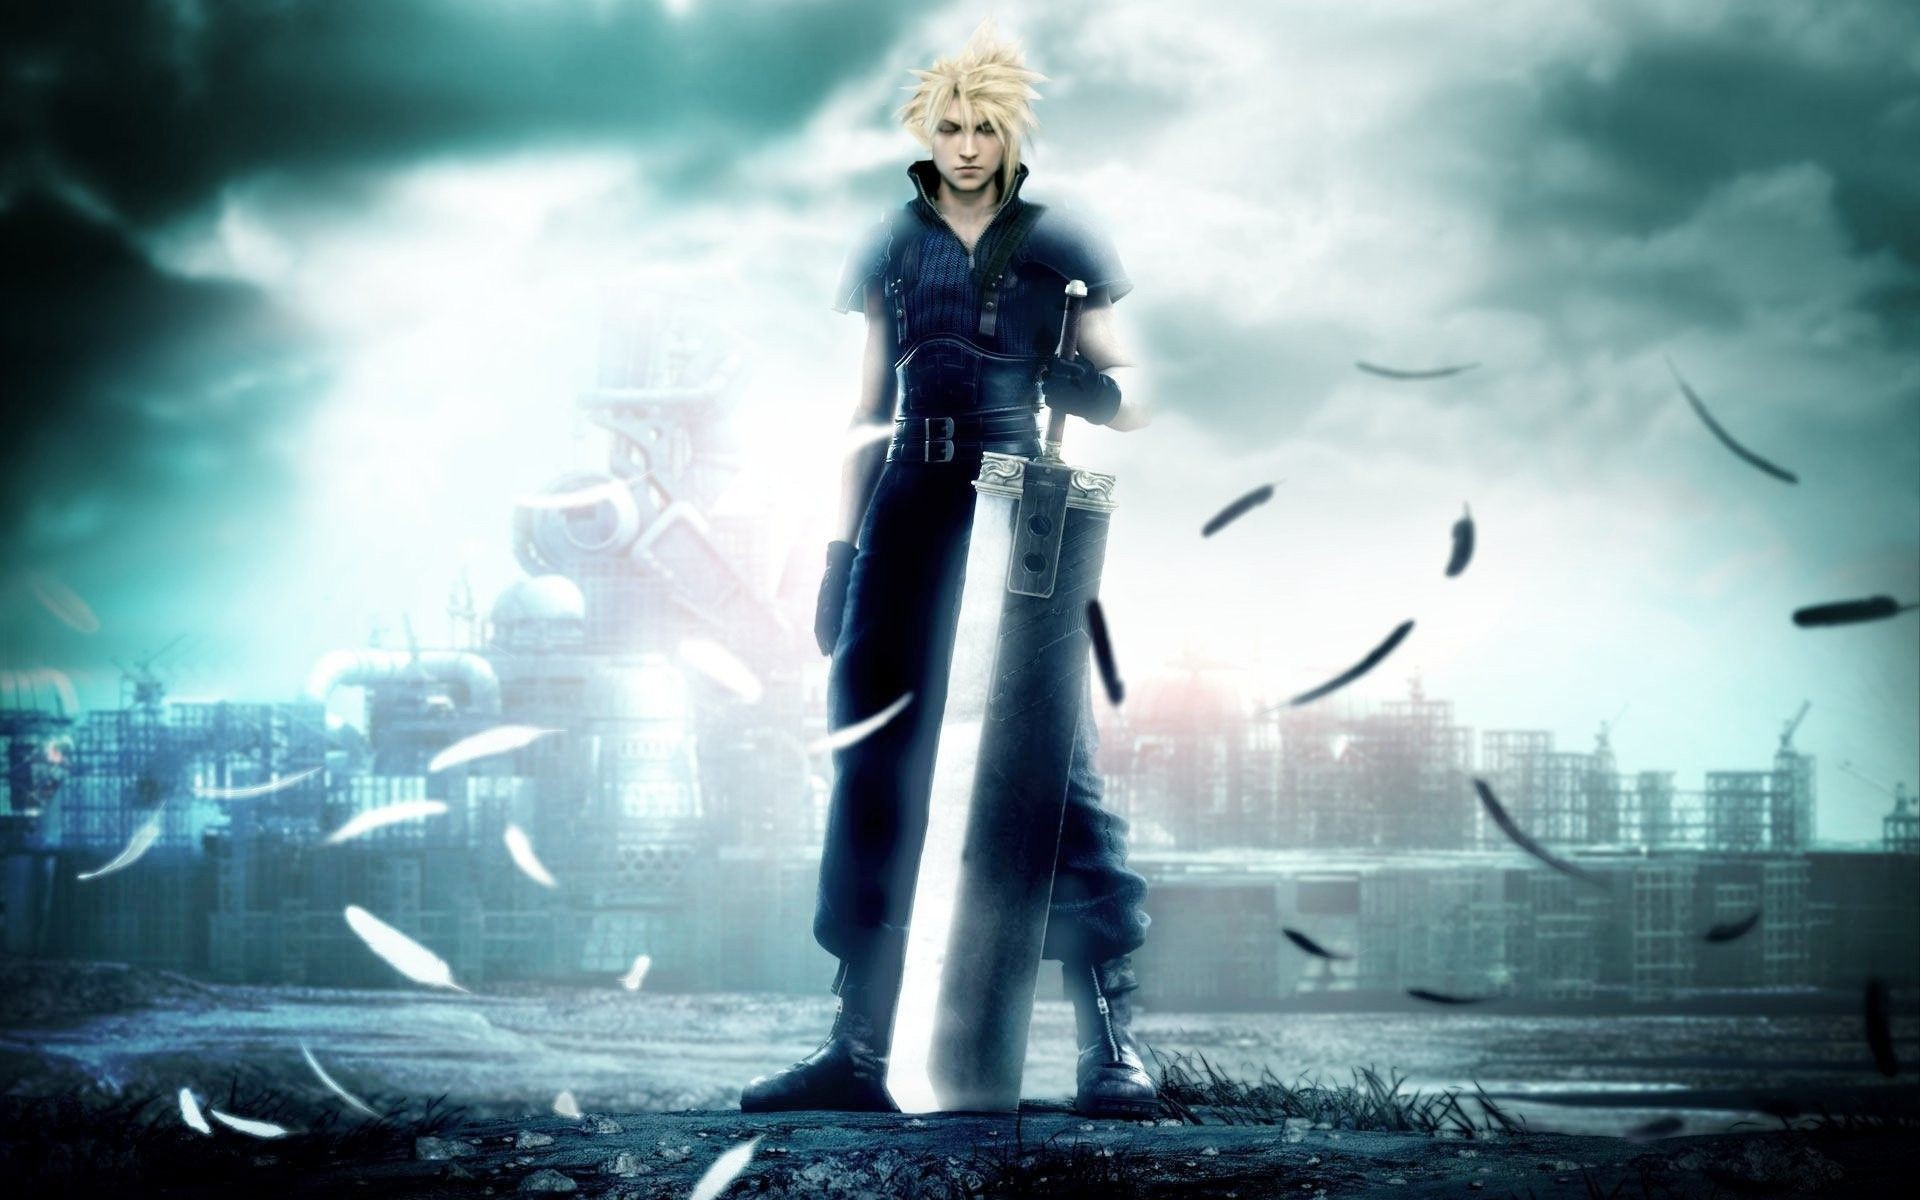 Final Fantasy Vii Wallpaper Download Free Awesome Full Hd